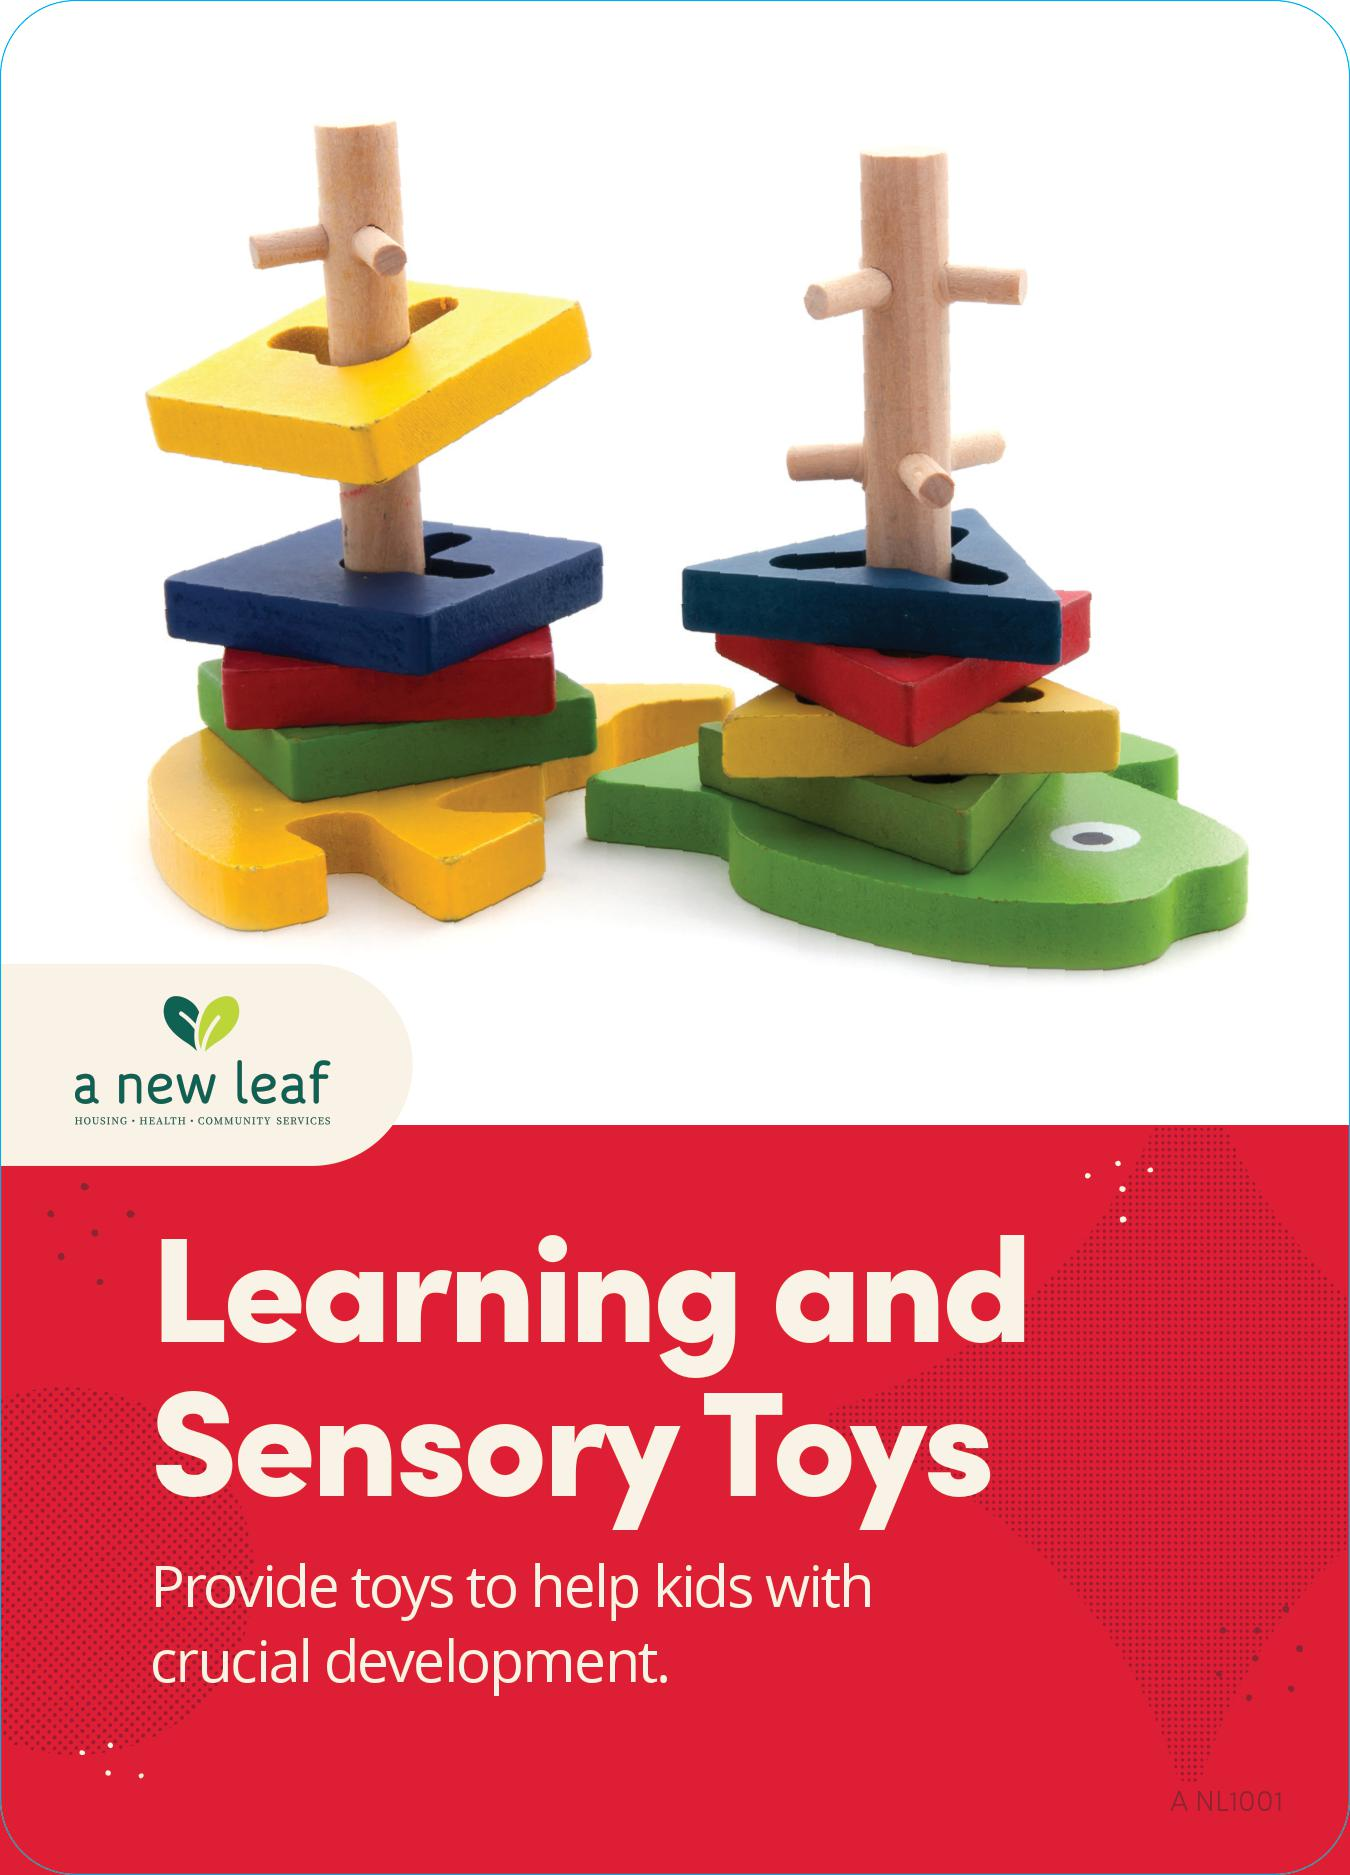 $20 - Learning and Sensory Toys for Children in Need